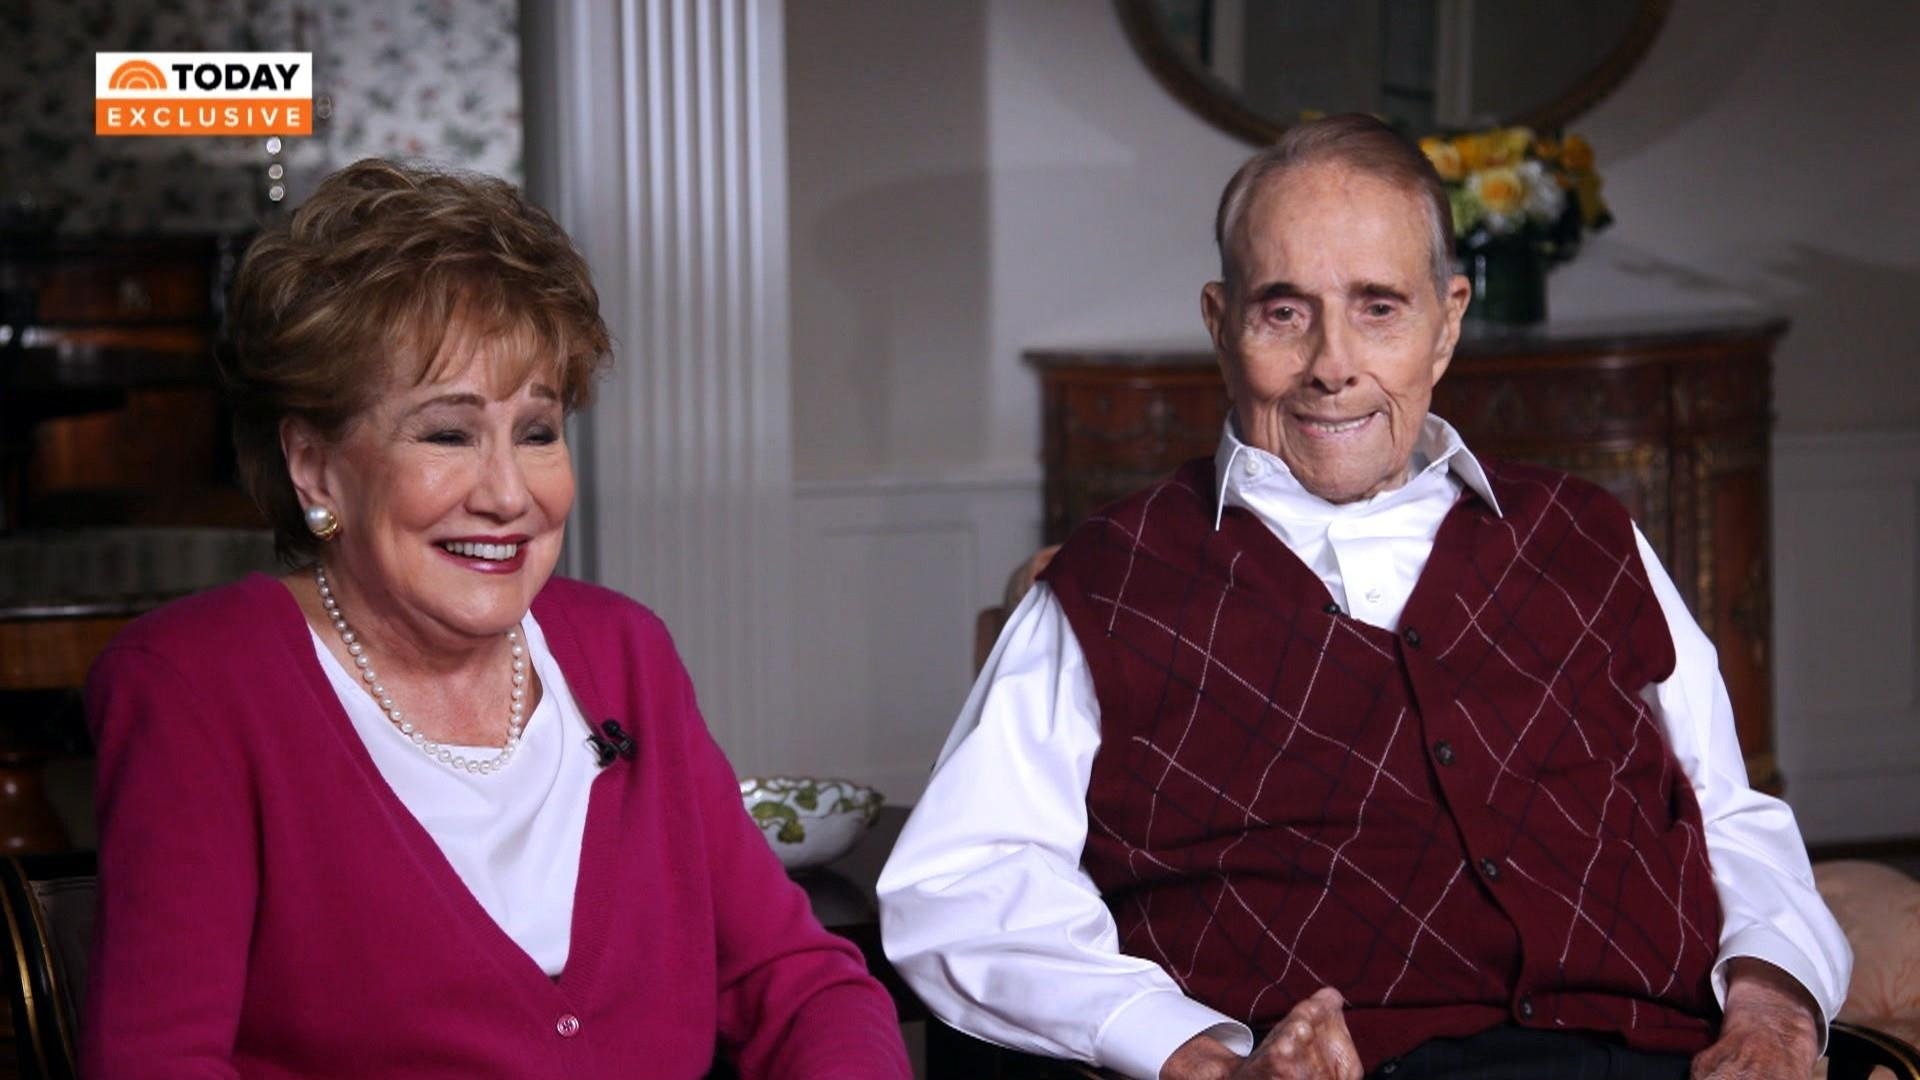 Bob and Elizabeth Dole look back on their remarkable love story